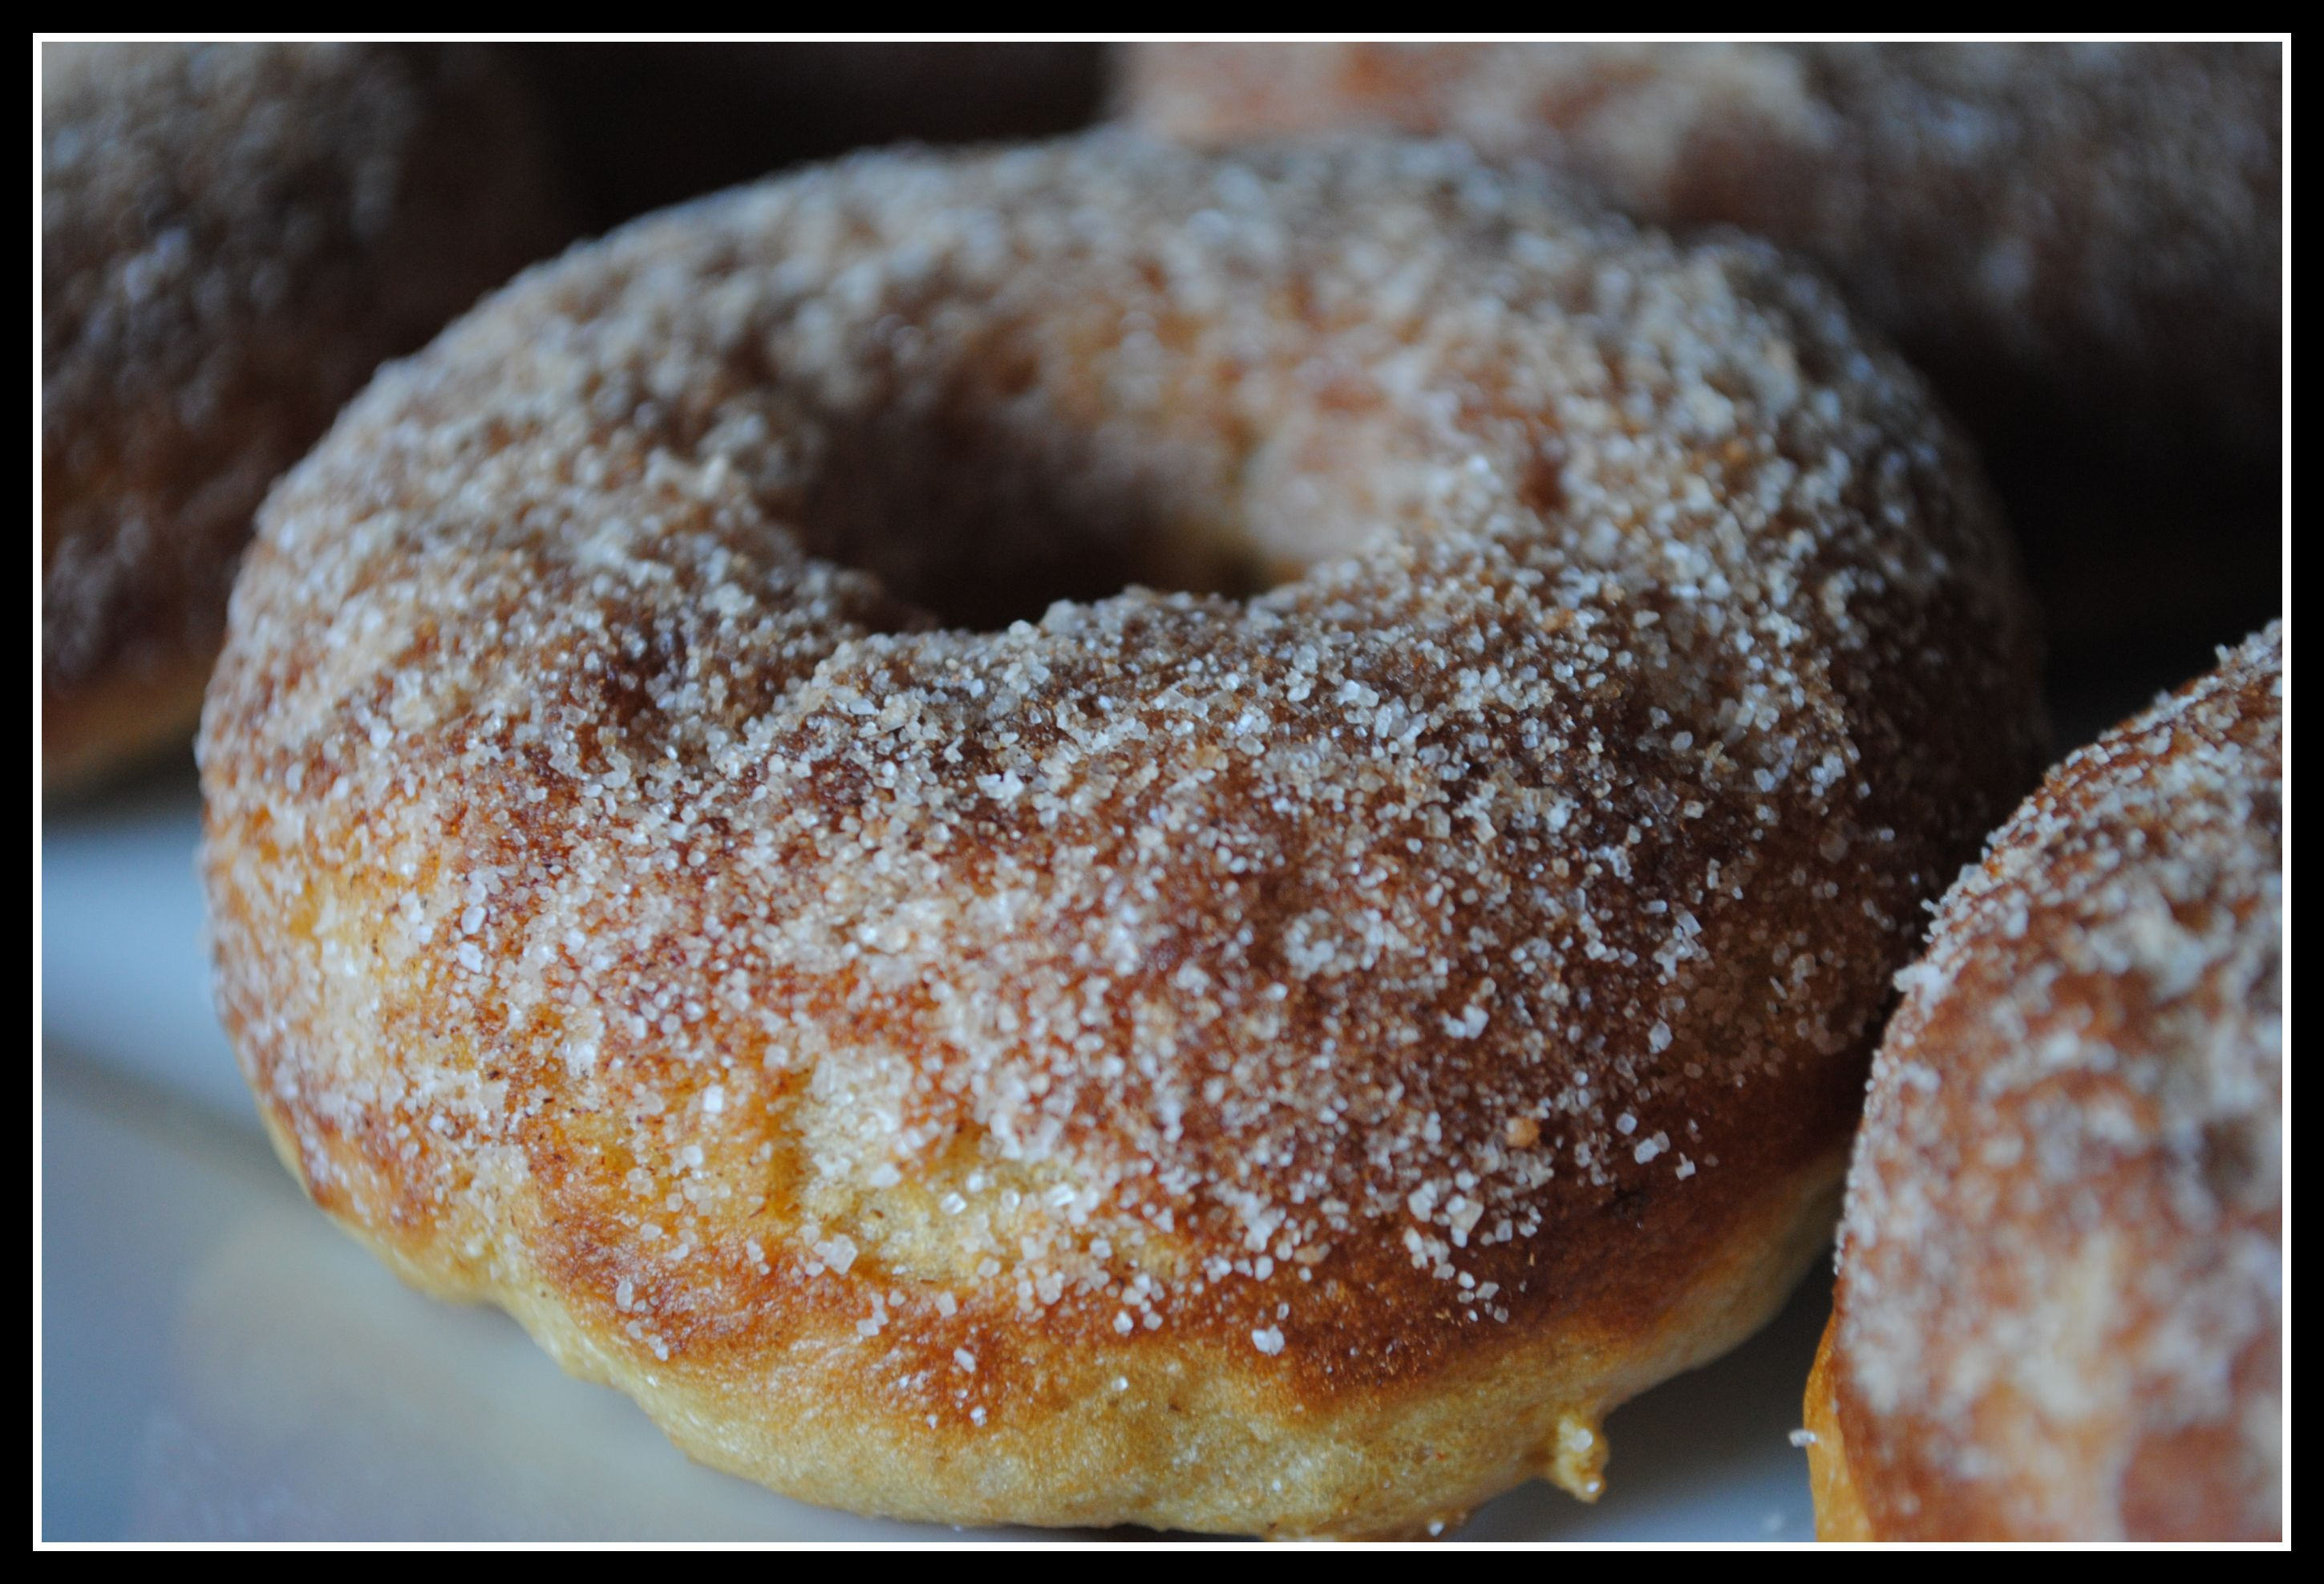 Maple Cinnamon-Sugar Baked Doughnuts